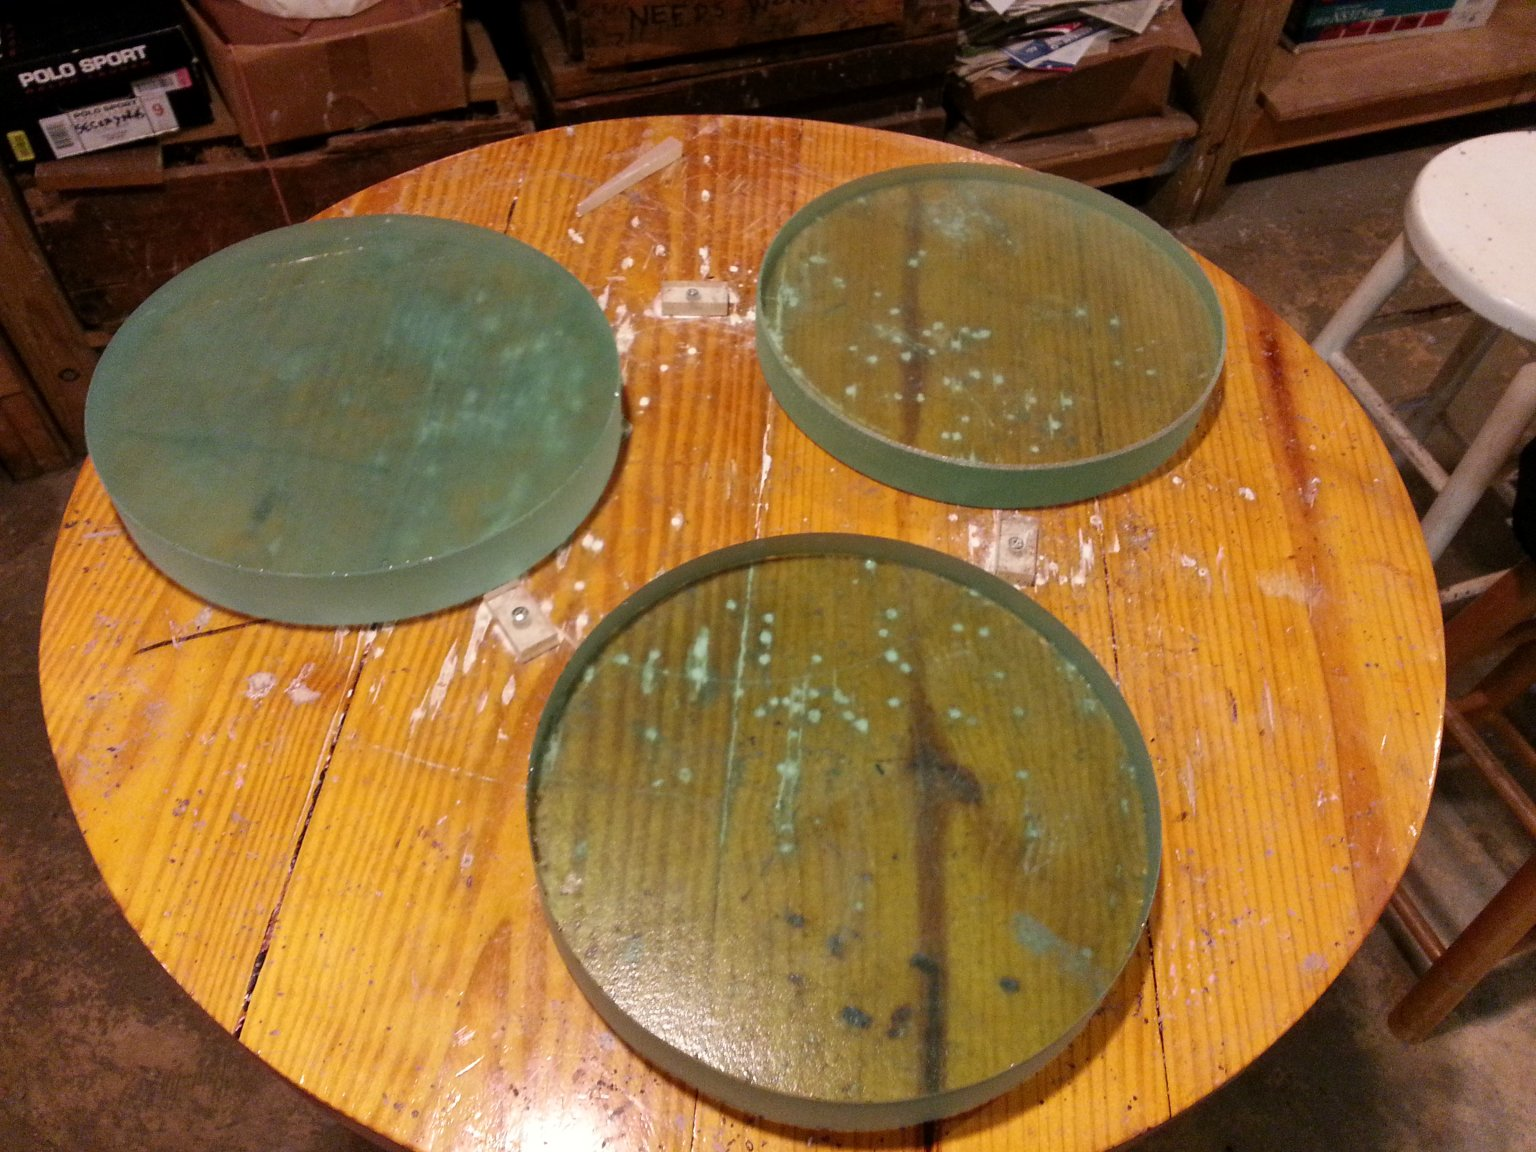 How I Make Telescope Mirror Blanks By Fusing Glass Sheets